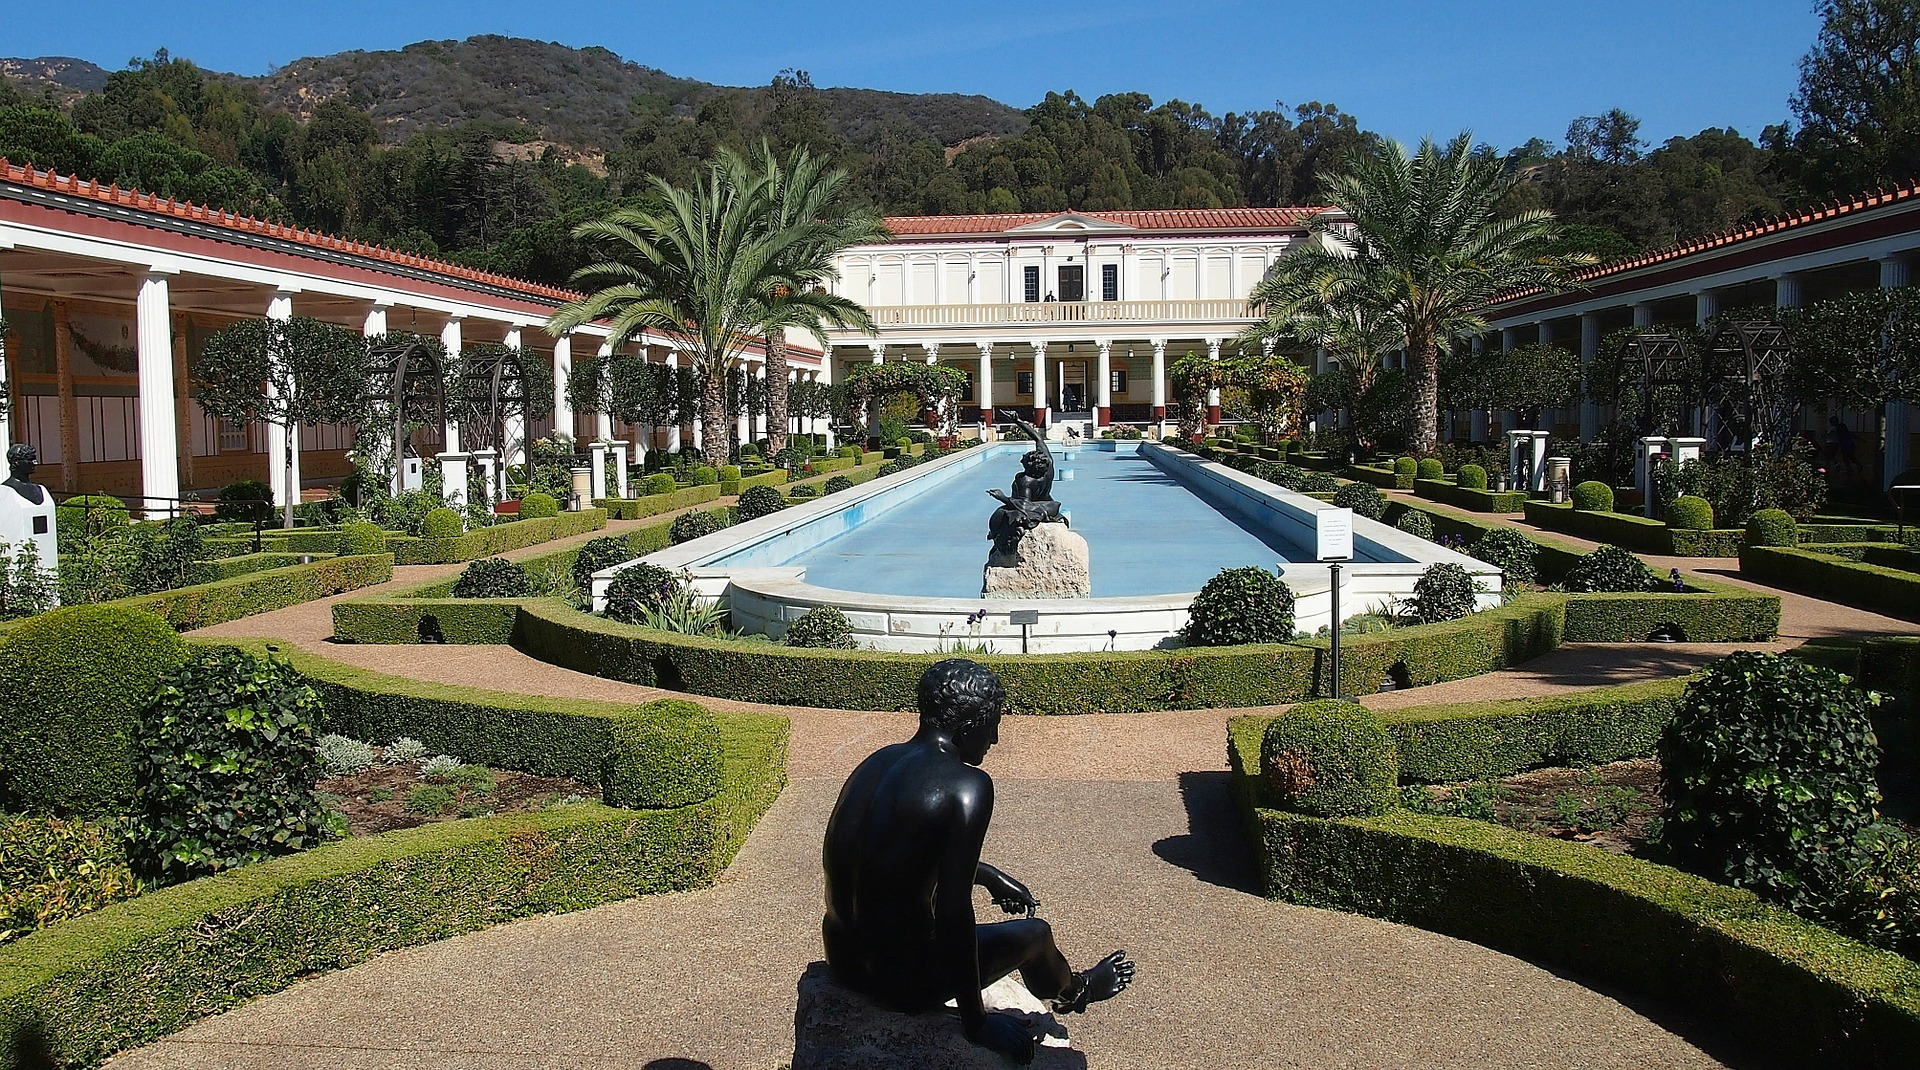 Getty Villa (J. Paul Getty Museum), Malibu, Los Angeles